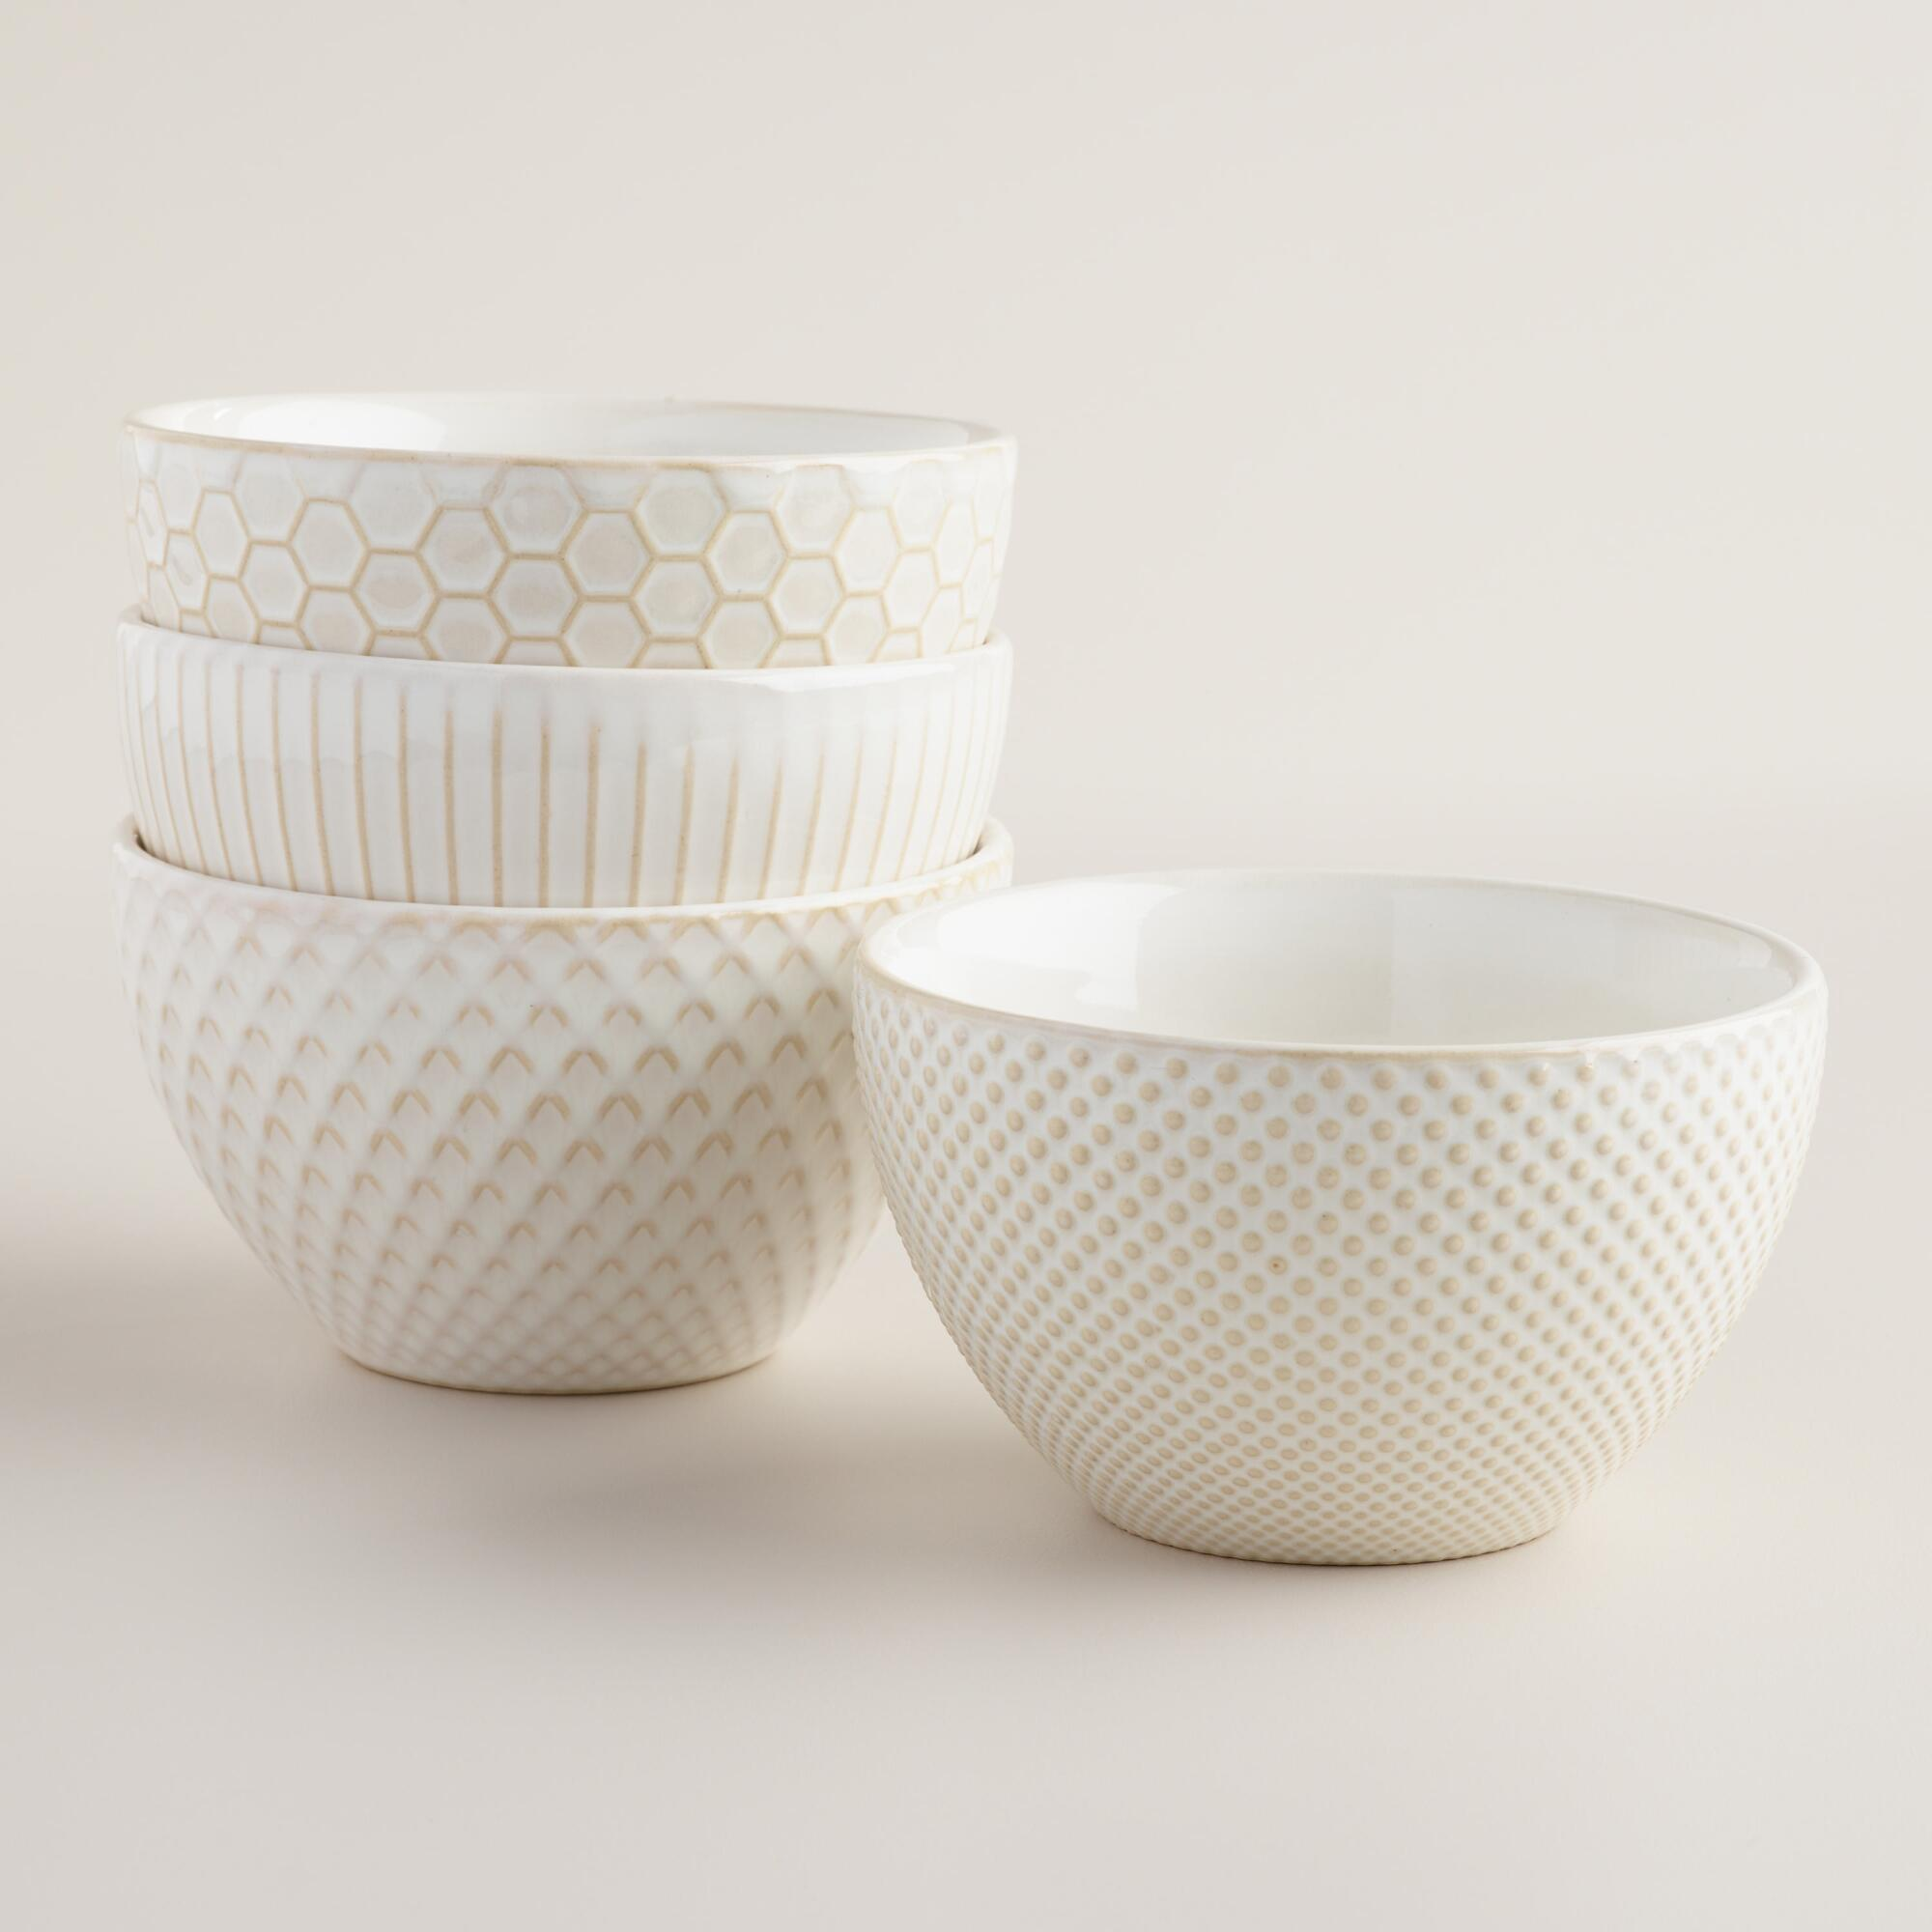 White Textured Bowls, Set Of 4 From Cost Plus World Market